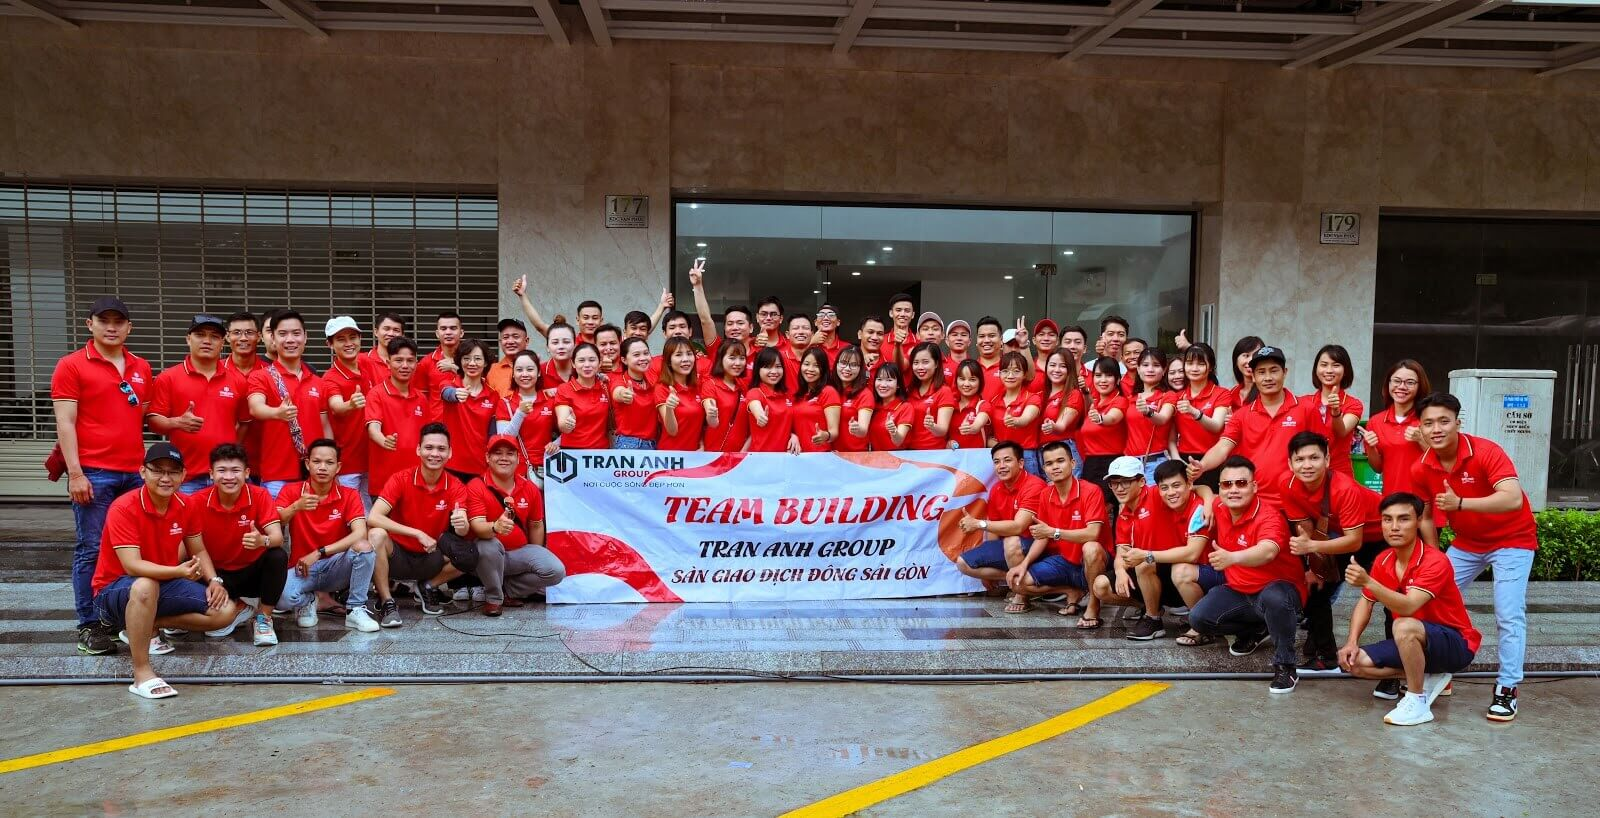 Teambuilding Trần Anh Group - 1